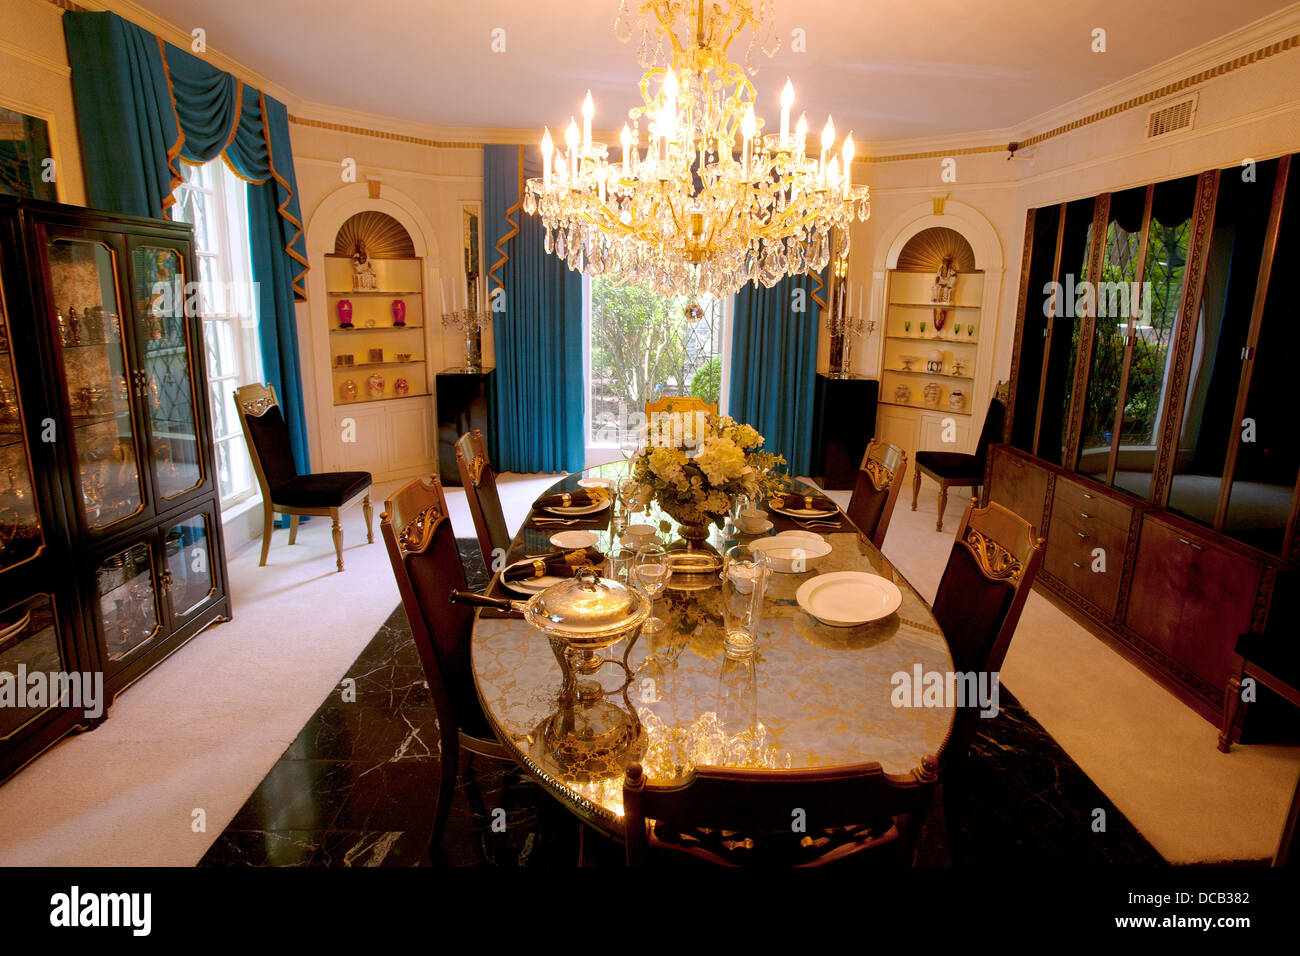 Super Die Dining Room In Graceland Die Heimat Von Elvis Presley In Download Free Architecture Designs Crovemadebymaigaardcom